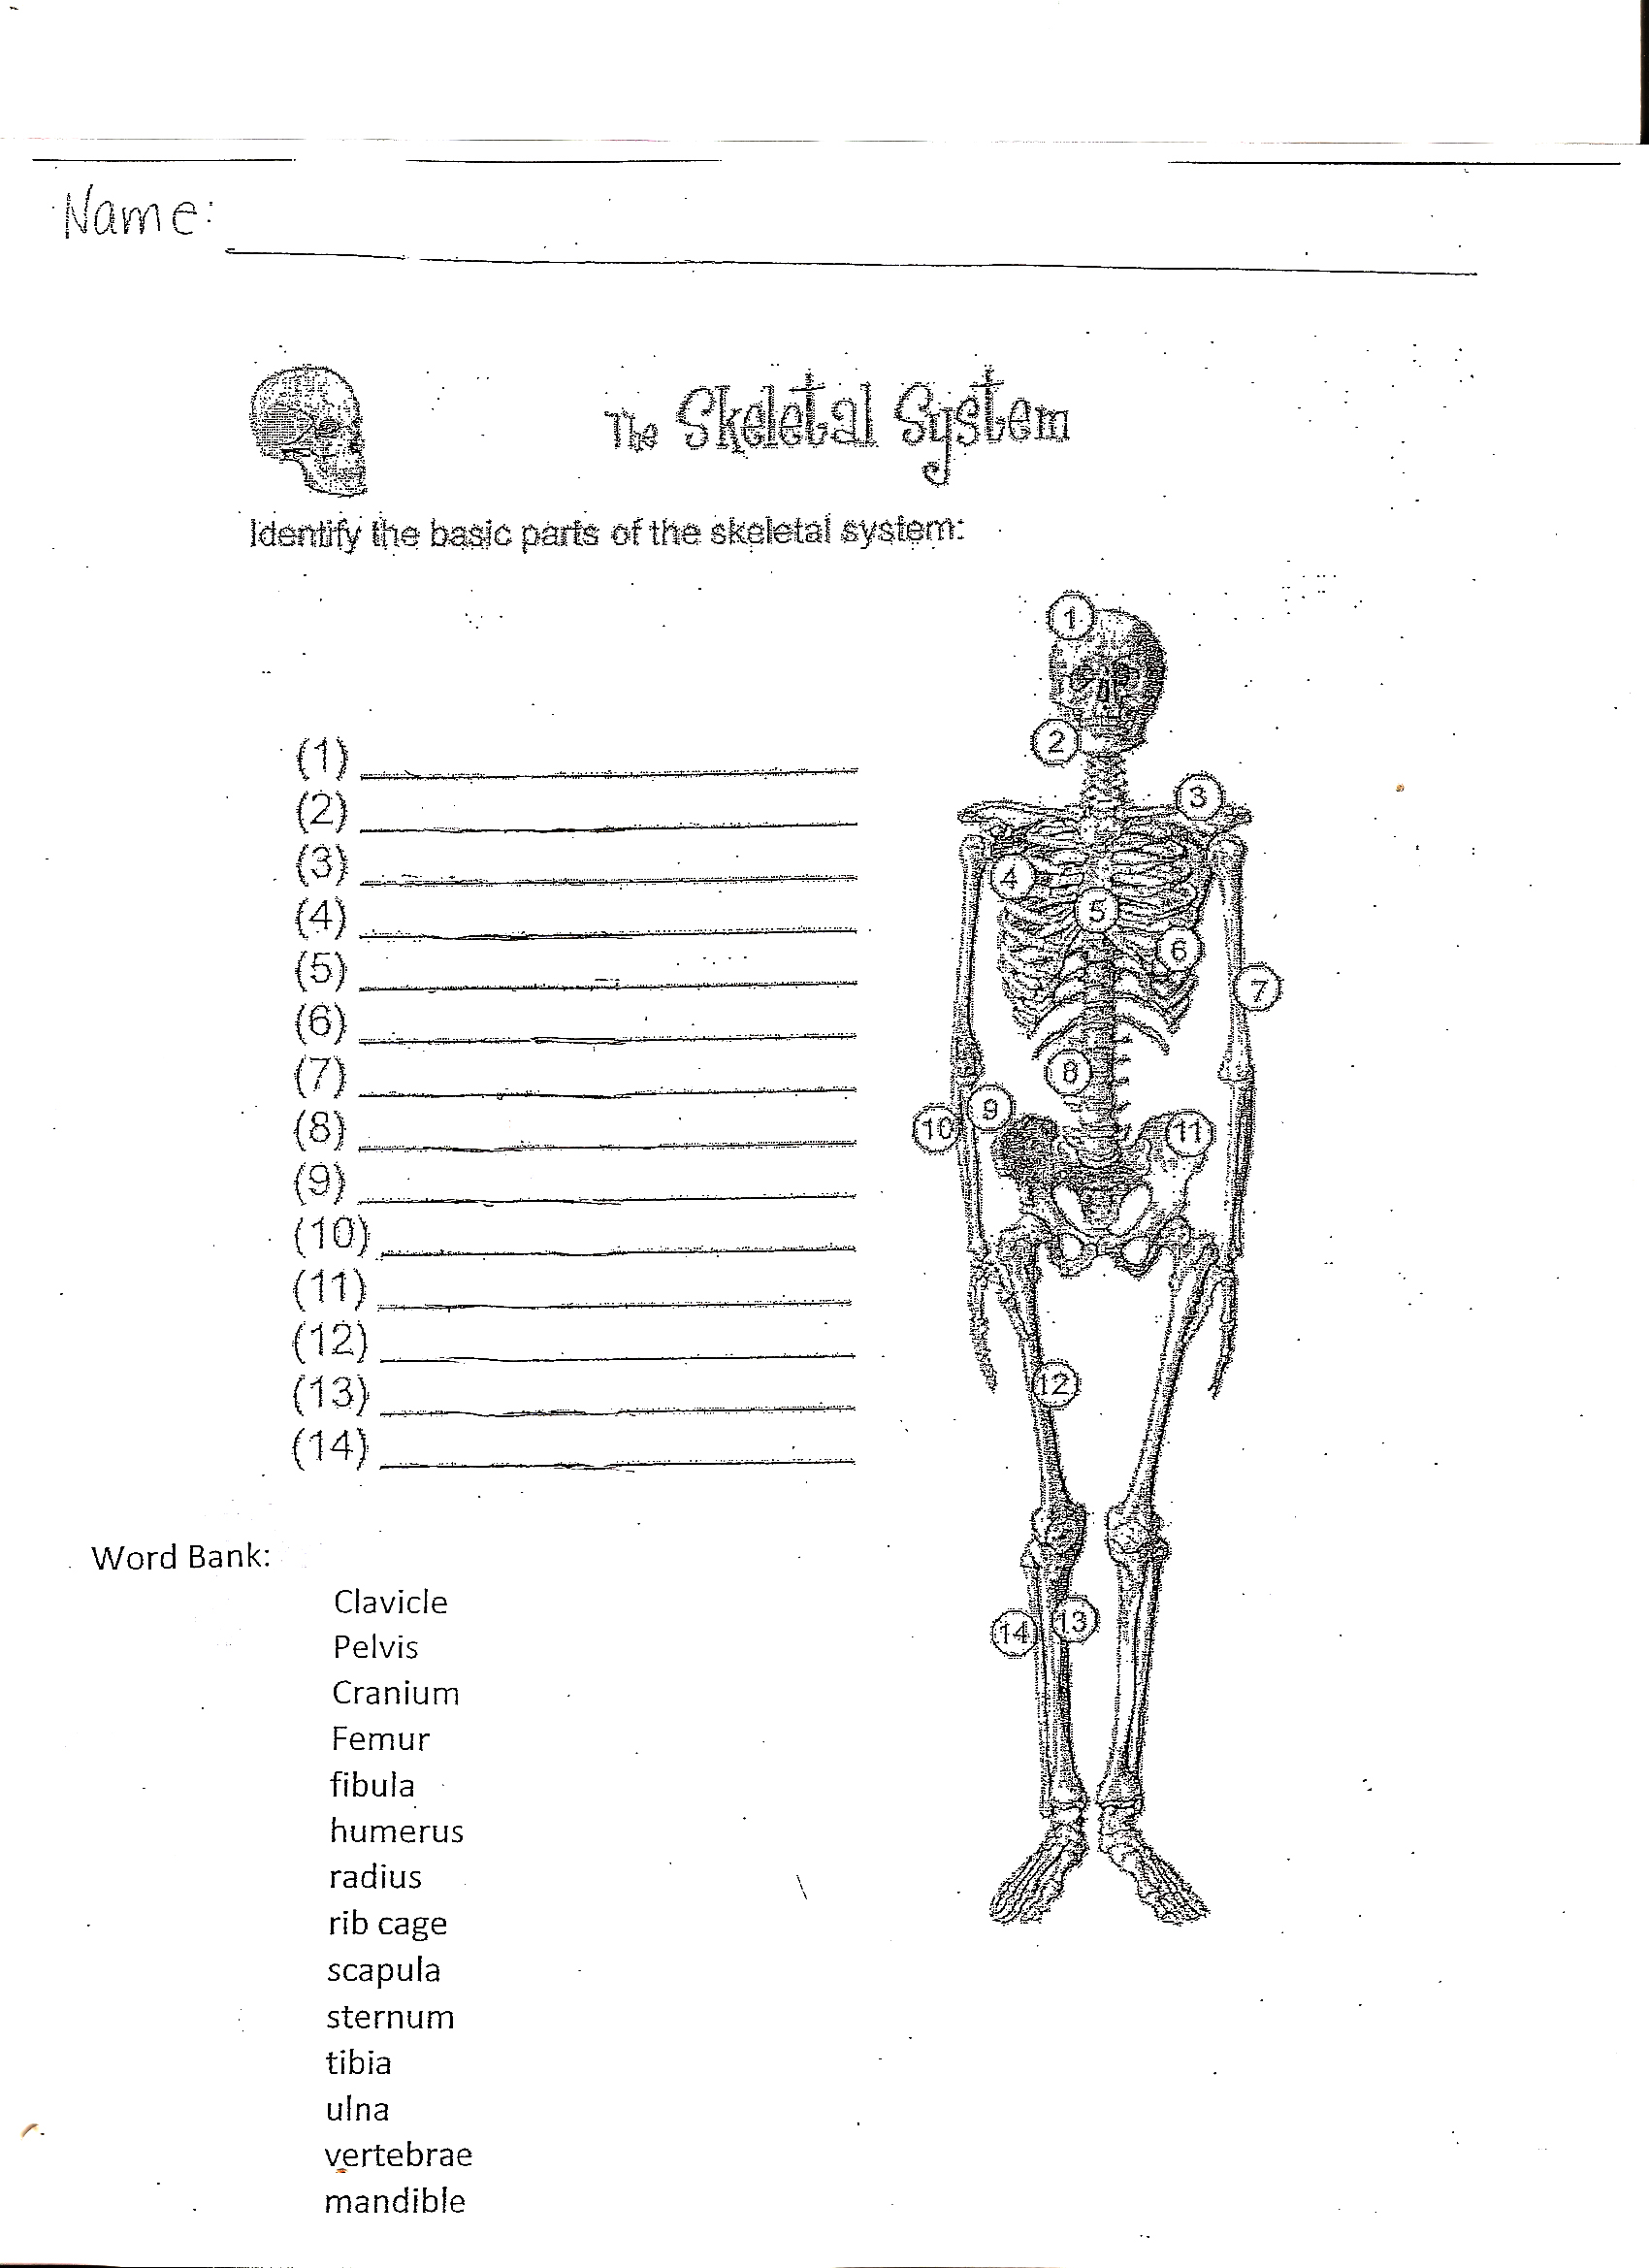 Worksheet Skeletal System Worksheet bones worksheet fifth grade life science worksheets awesome answers on skeleton labeling with answer key